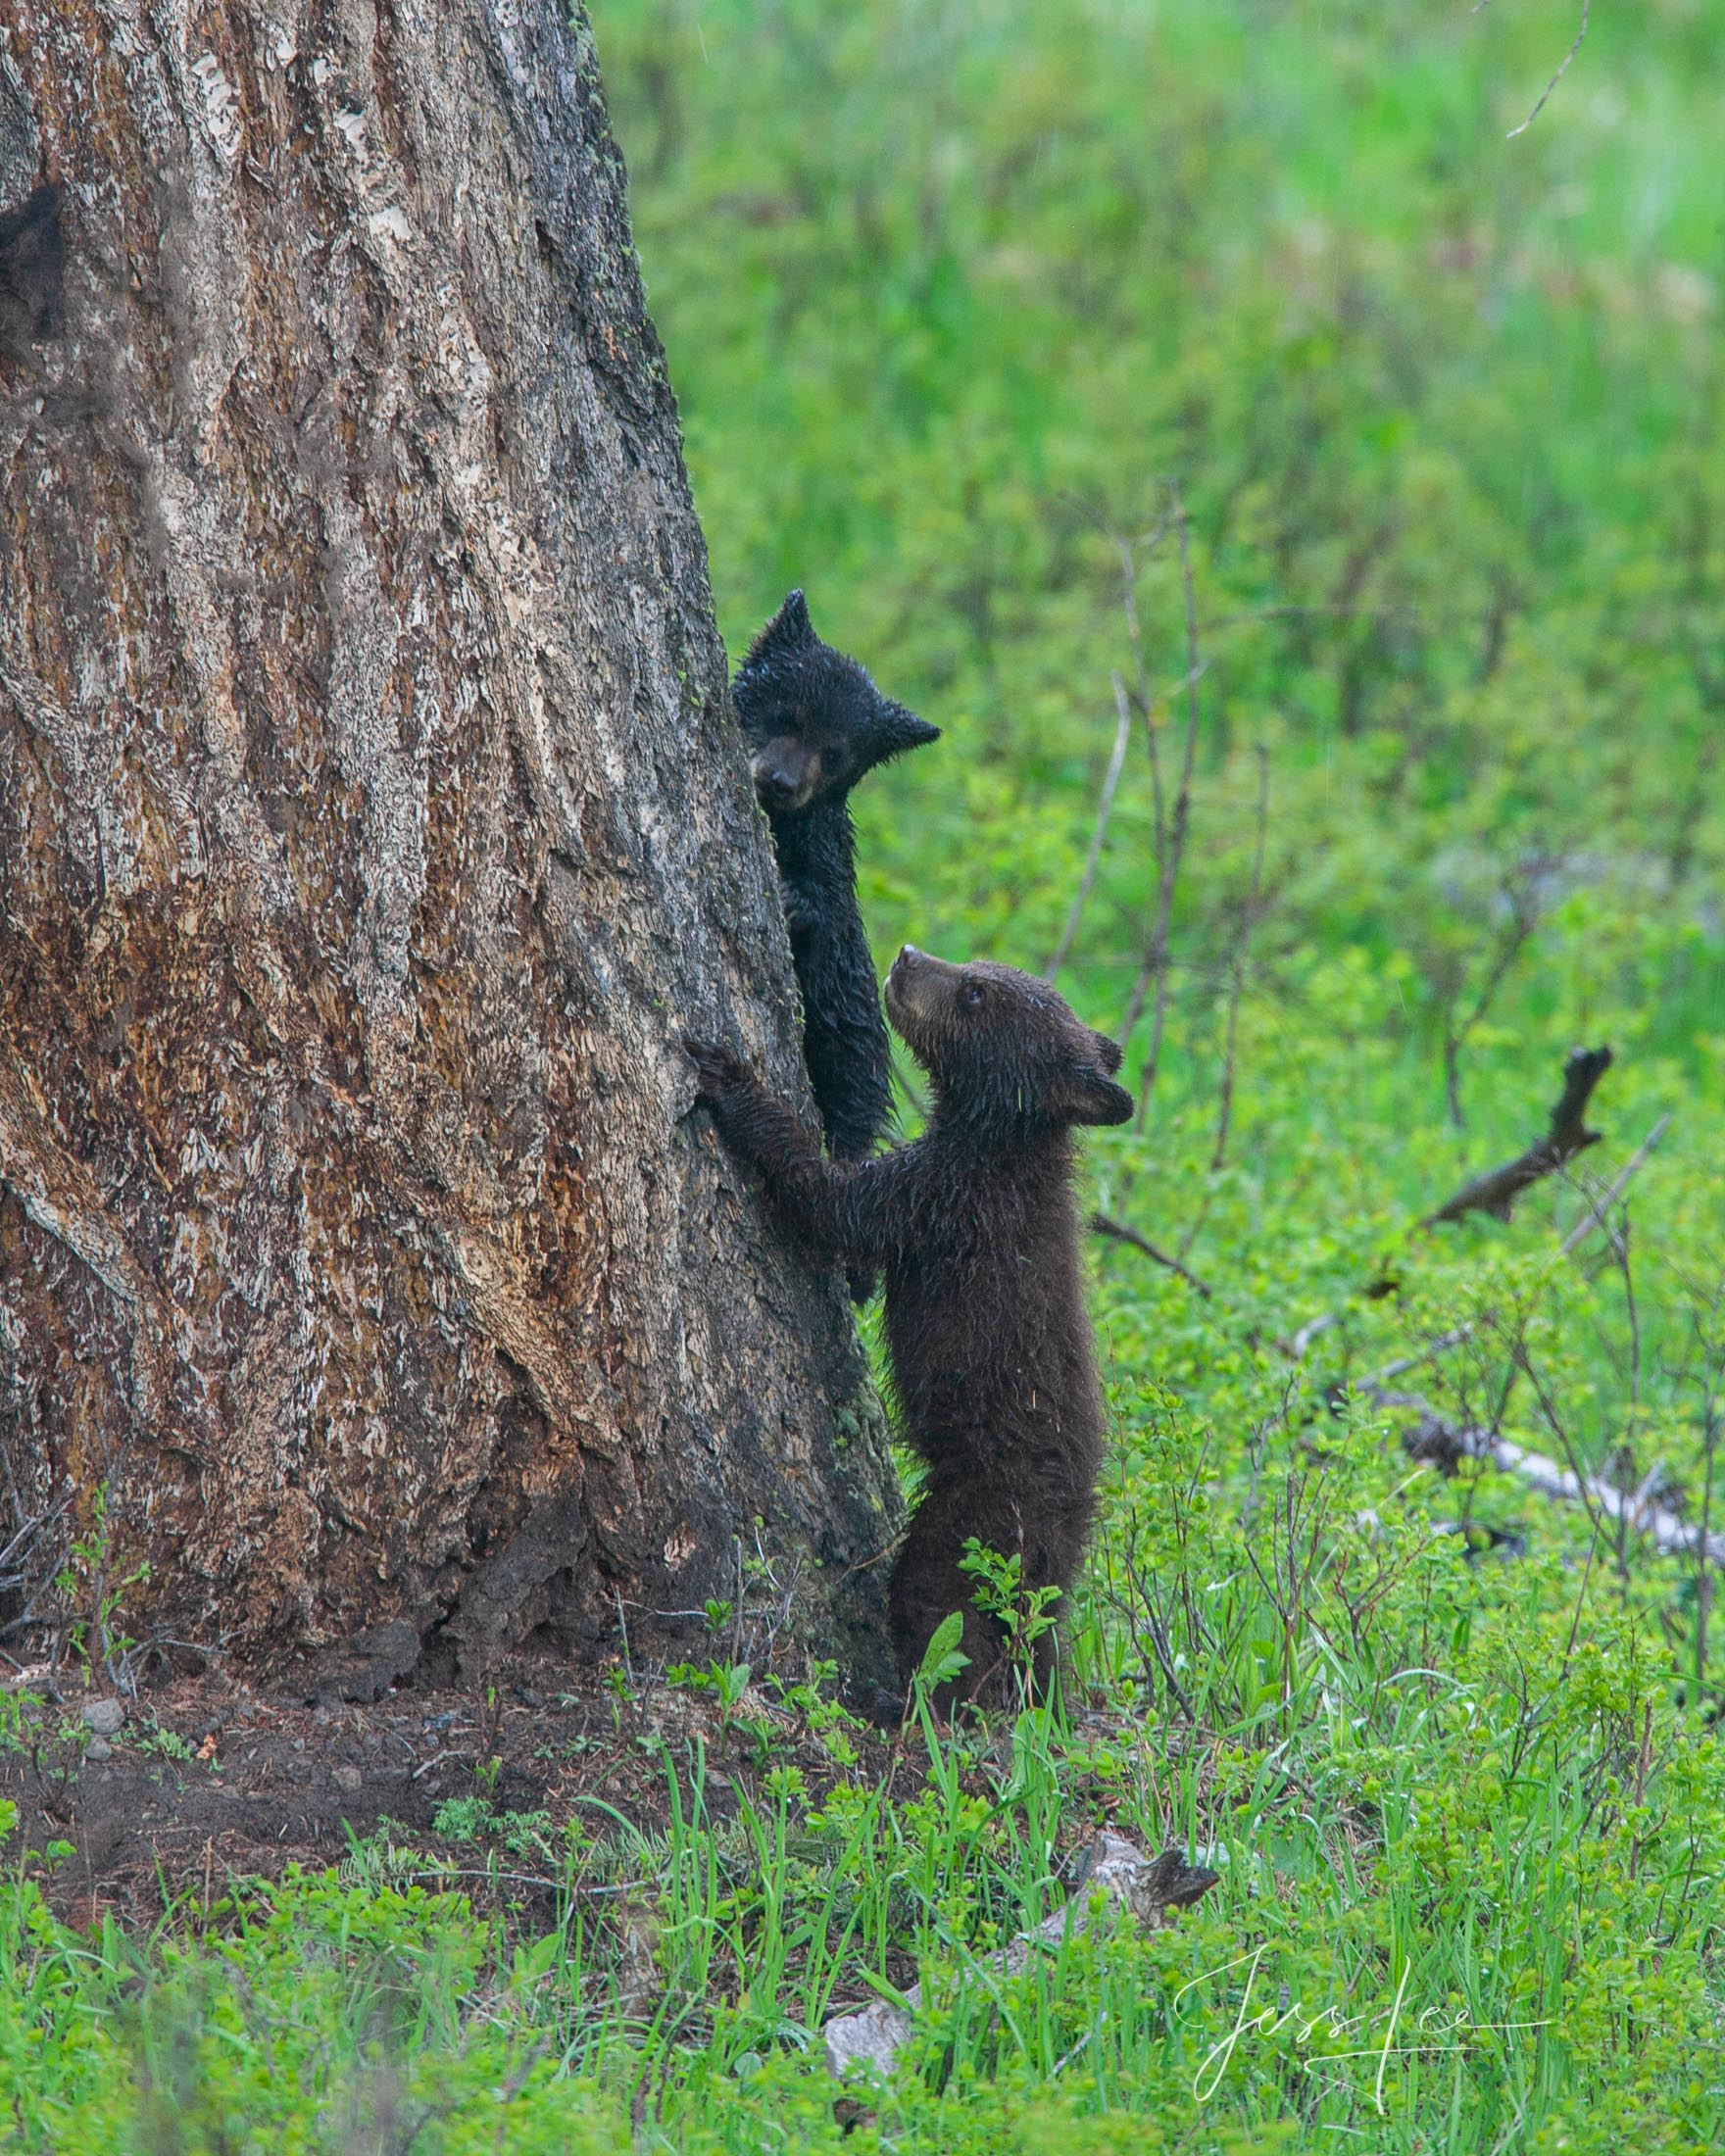 Black Bear cus at a tree, photo  Limited Edition of 300 prints. These bear photographs are offered as high-quality prints for...